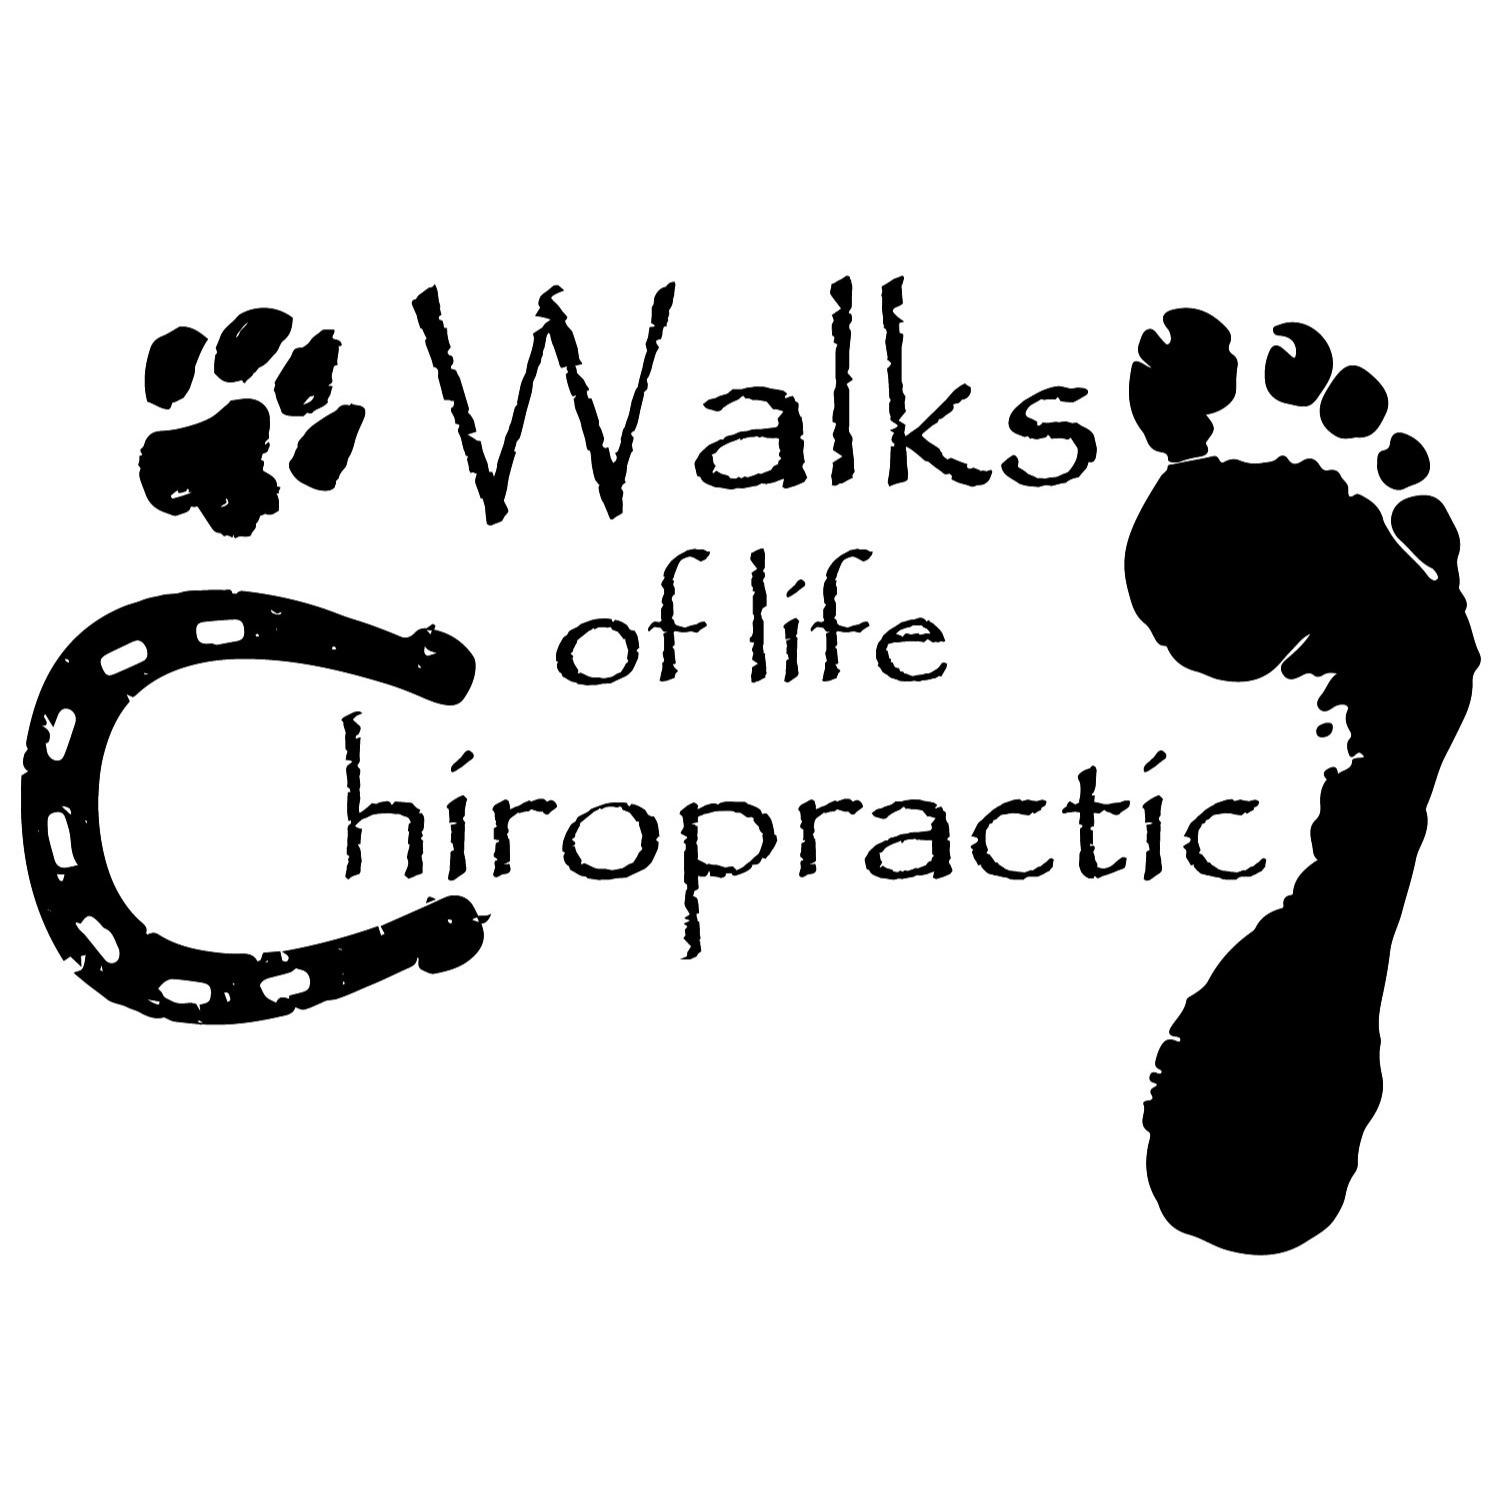 Walks of Life Chiropractic